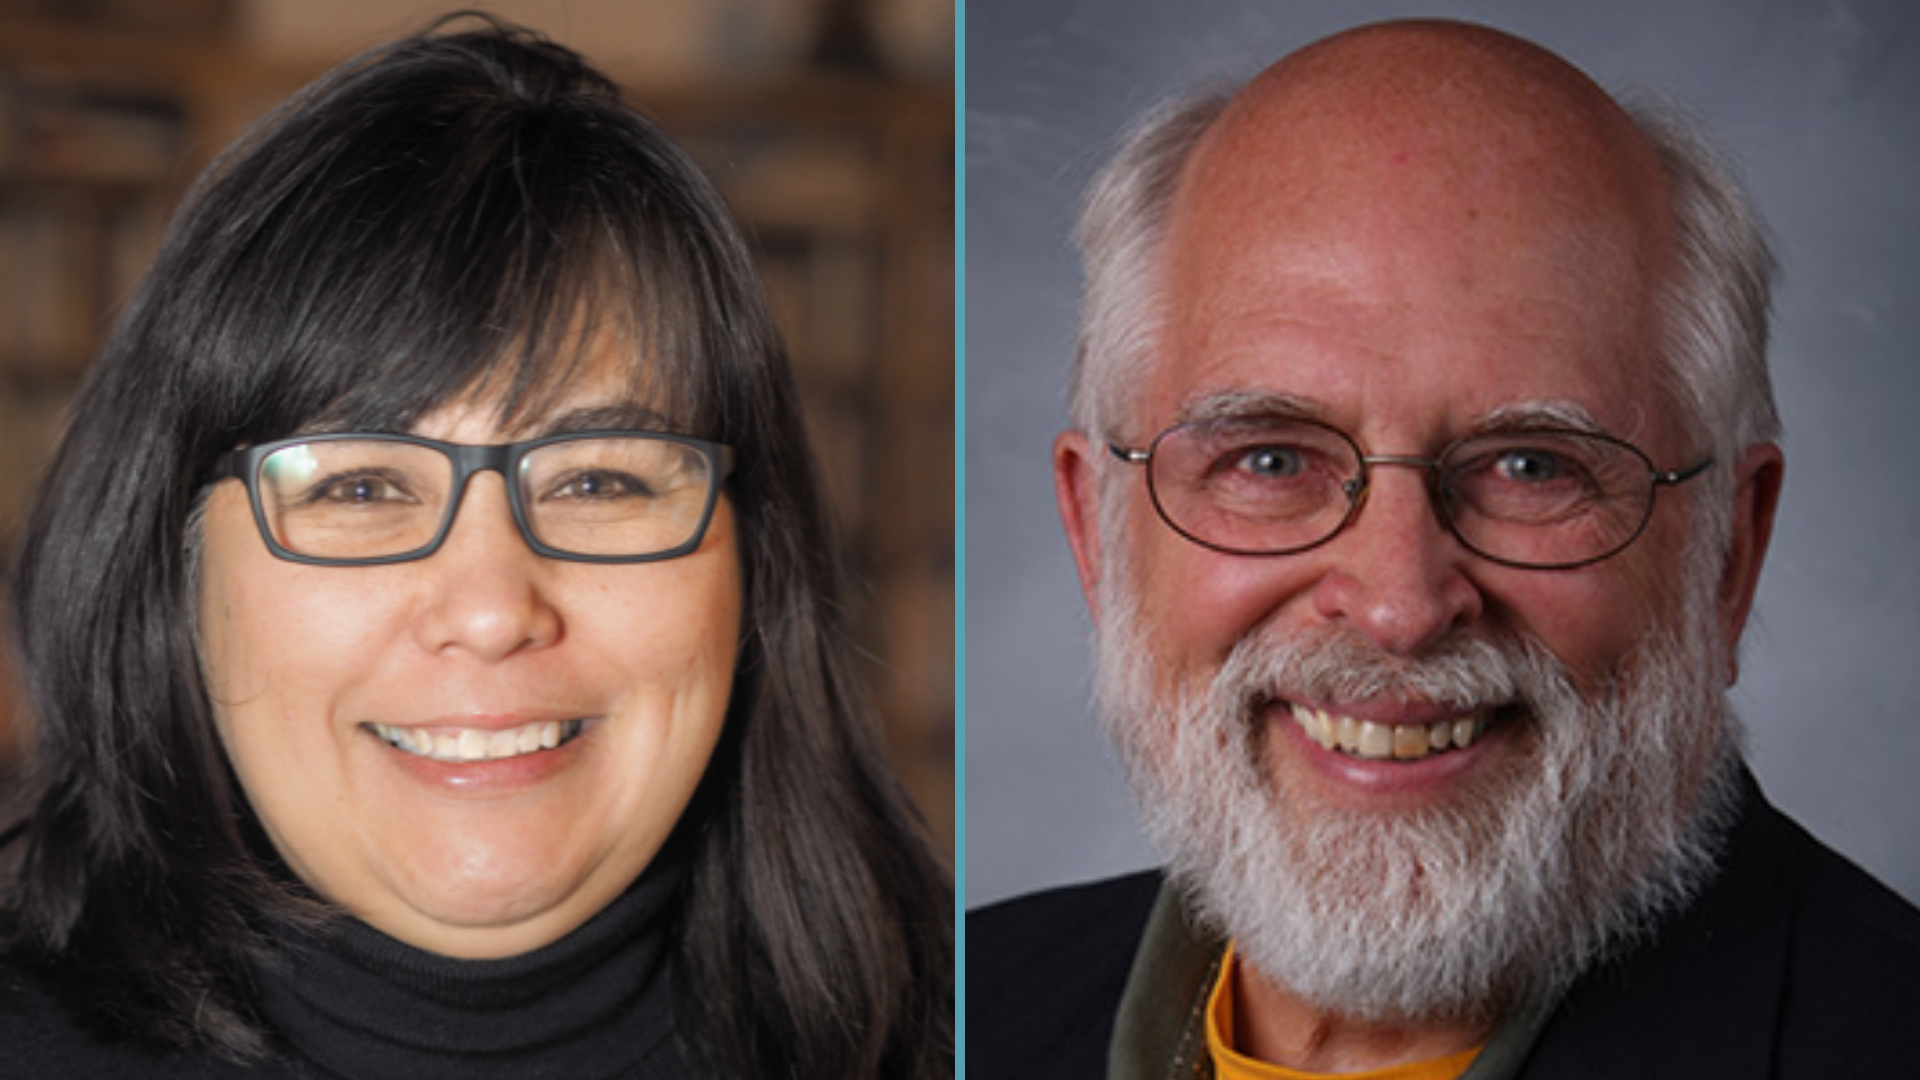 Faculty Members Host Community Programming Covering the COVID-19 Pandemic